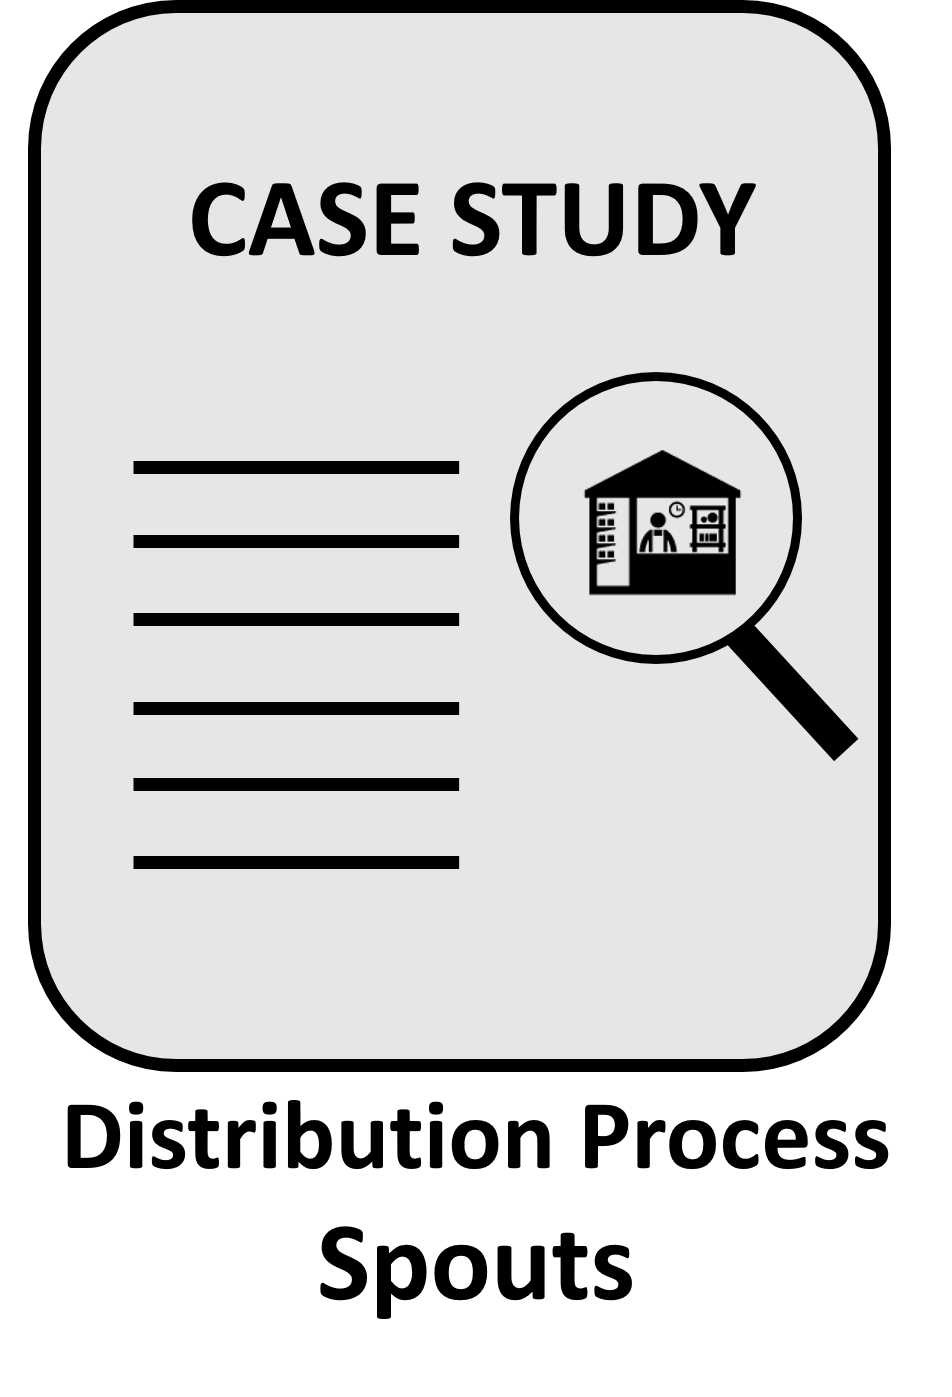 Distribution process spouts case study